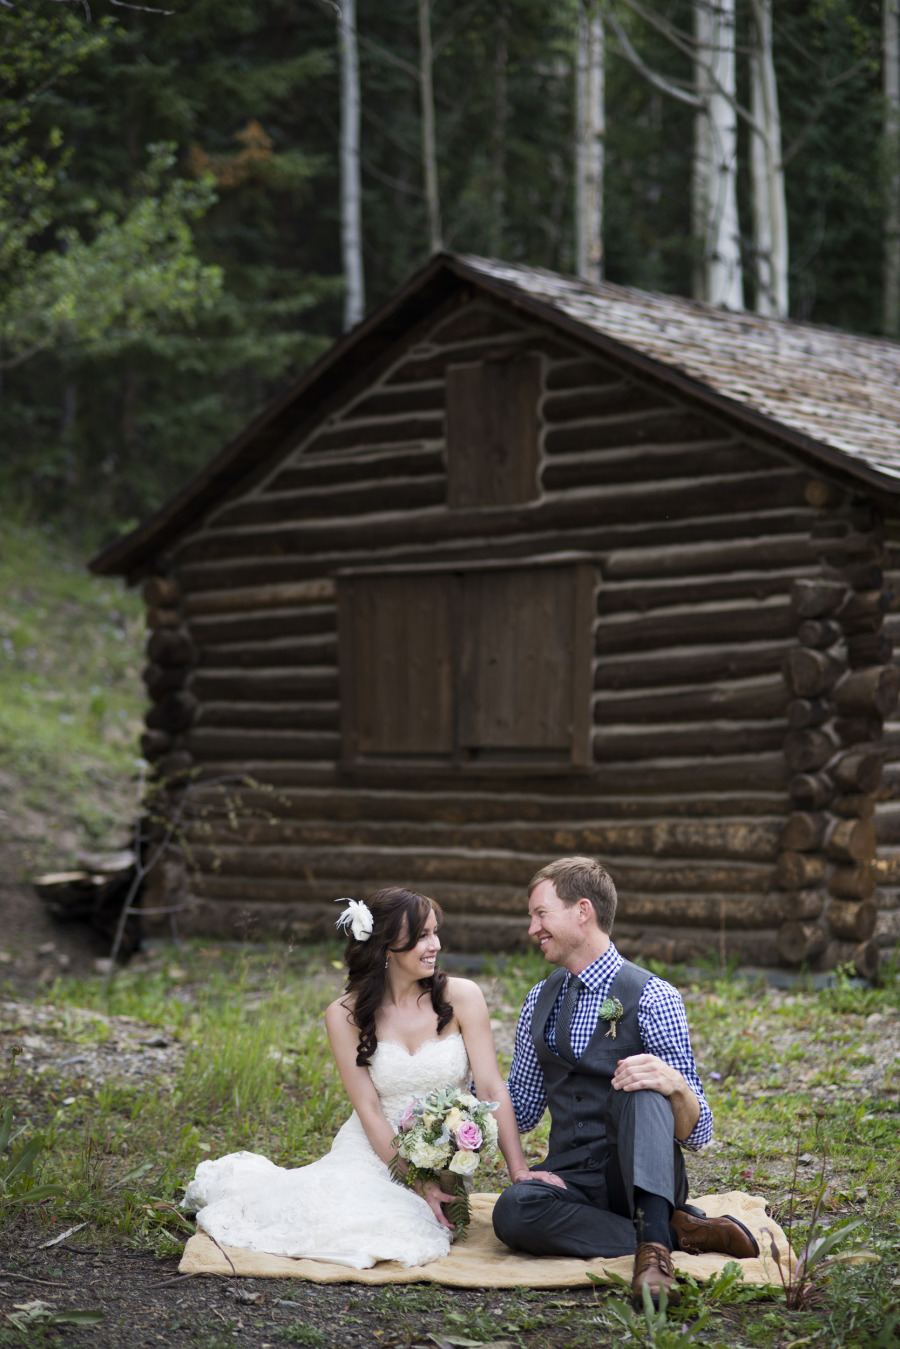 Miranda_Bryce_Ranch_Wedding_8-2.jpg